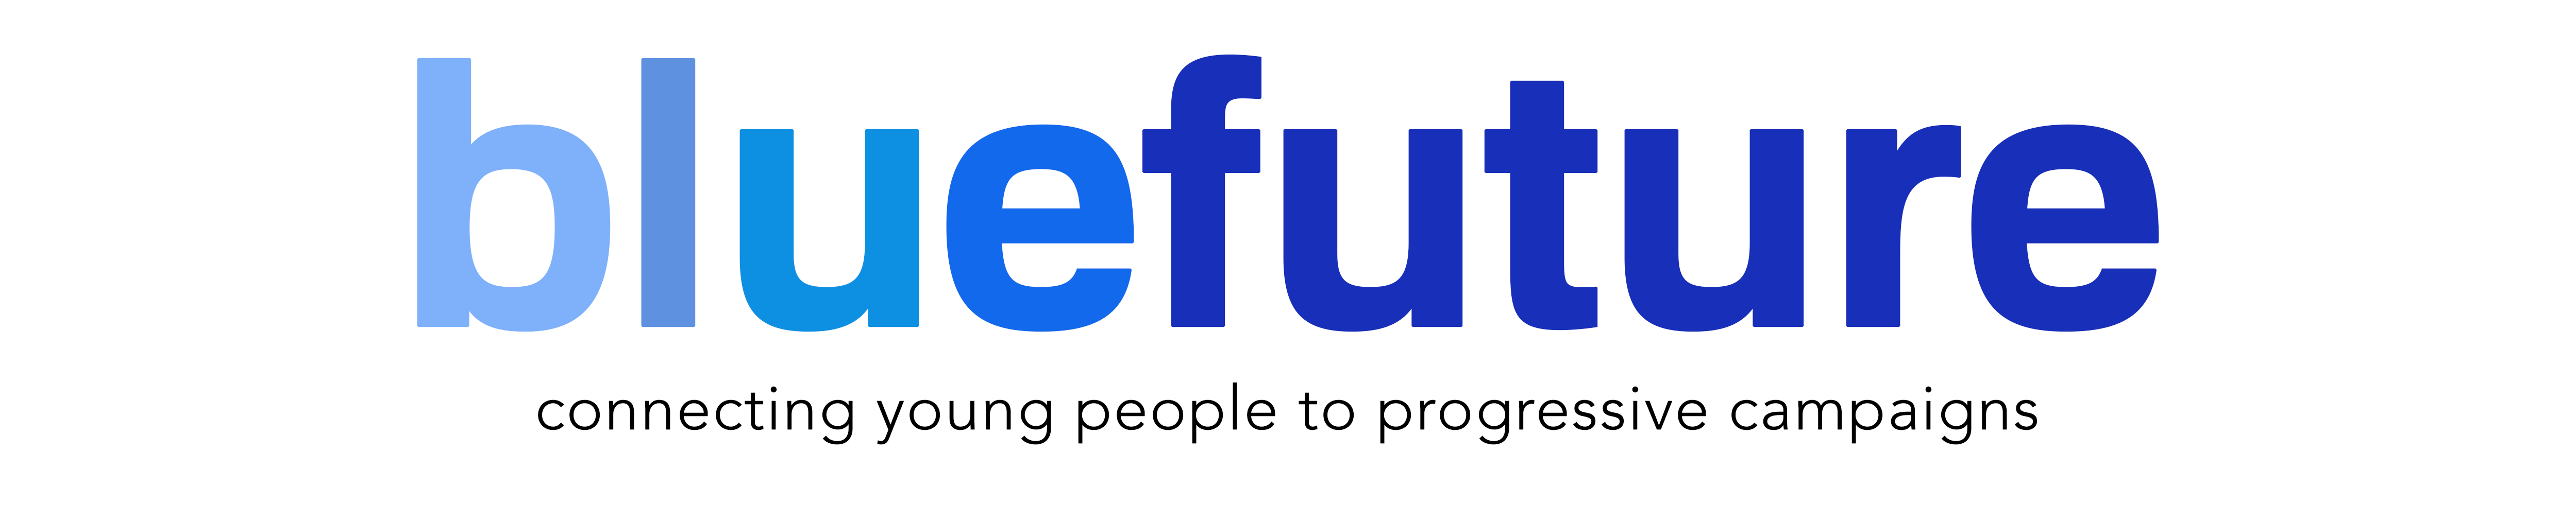 Youth Progressive Action Catalyst - Unlimited